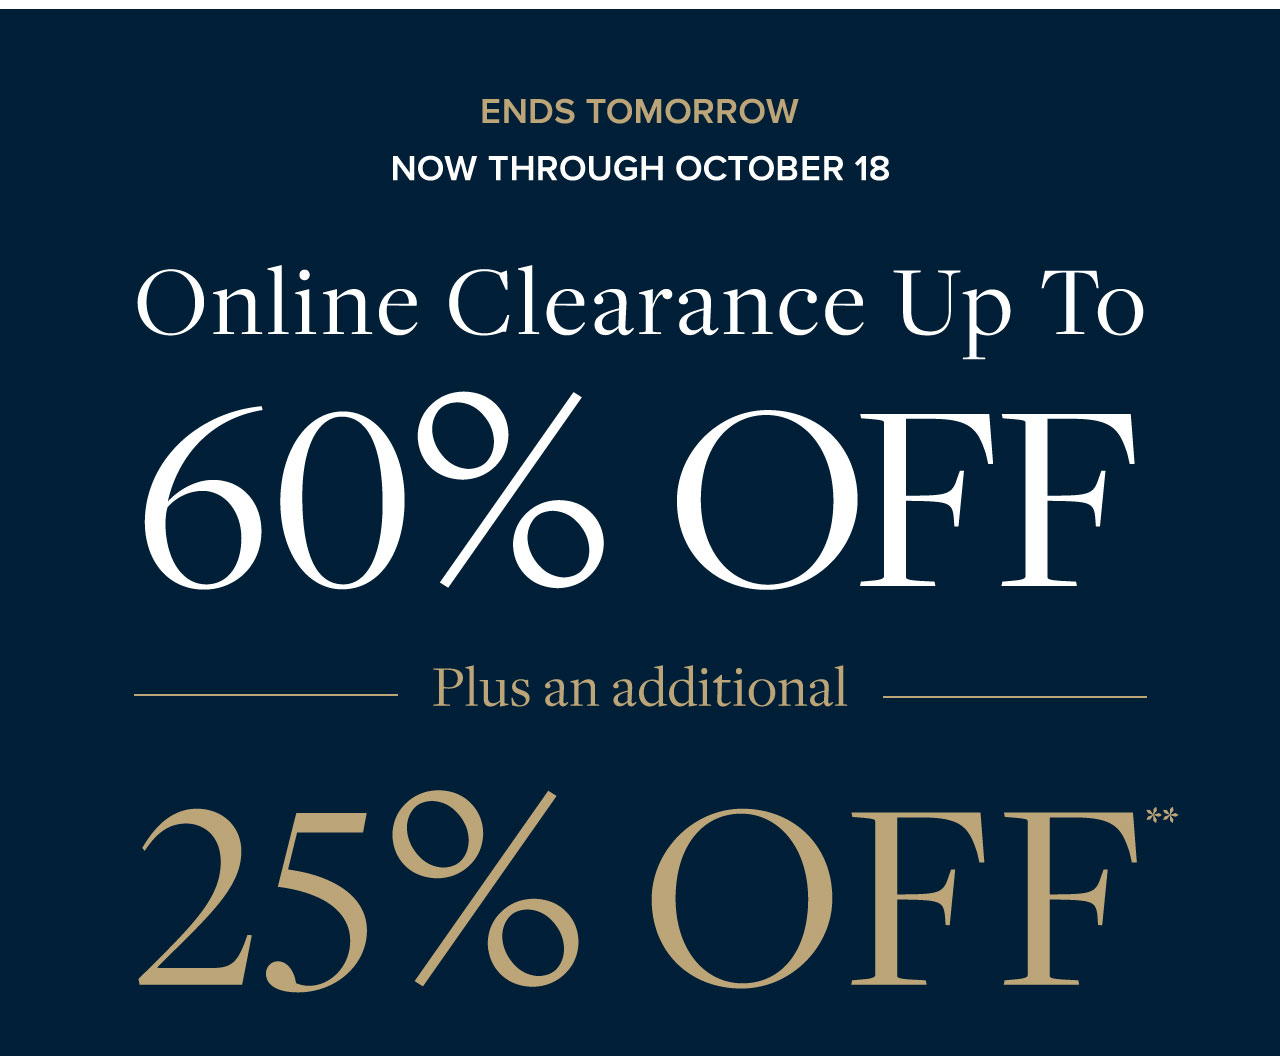 Final Hours Online Clearance Up to 60% Off Plus an additional 25% Off.